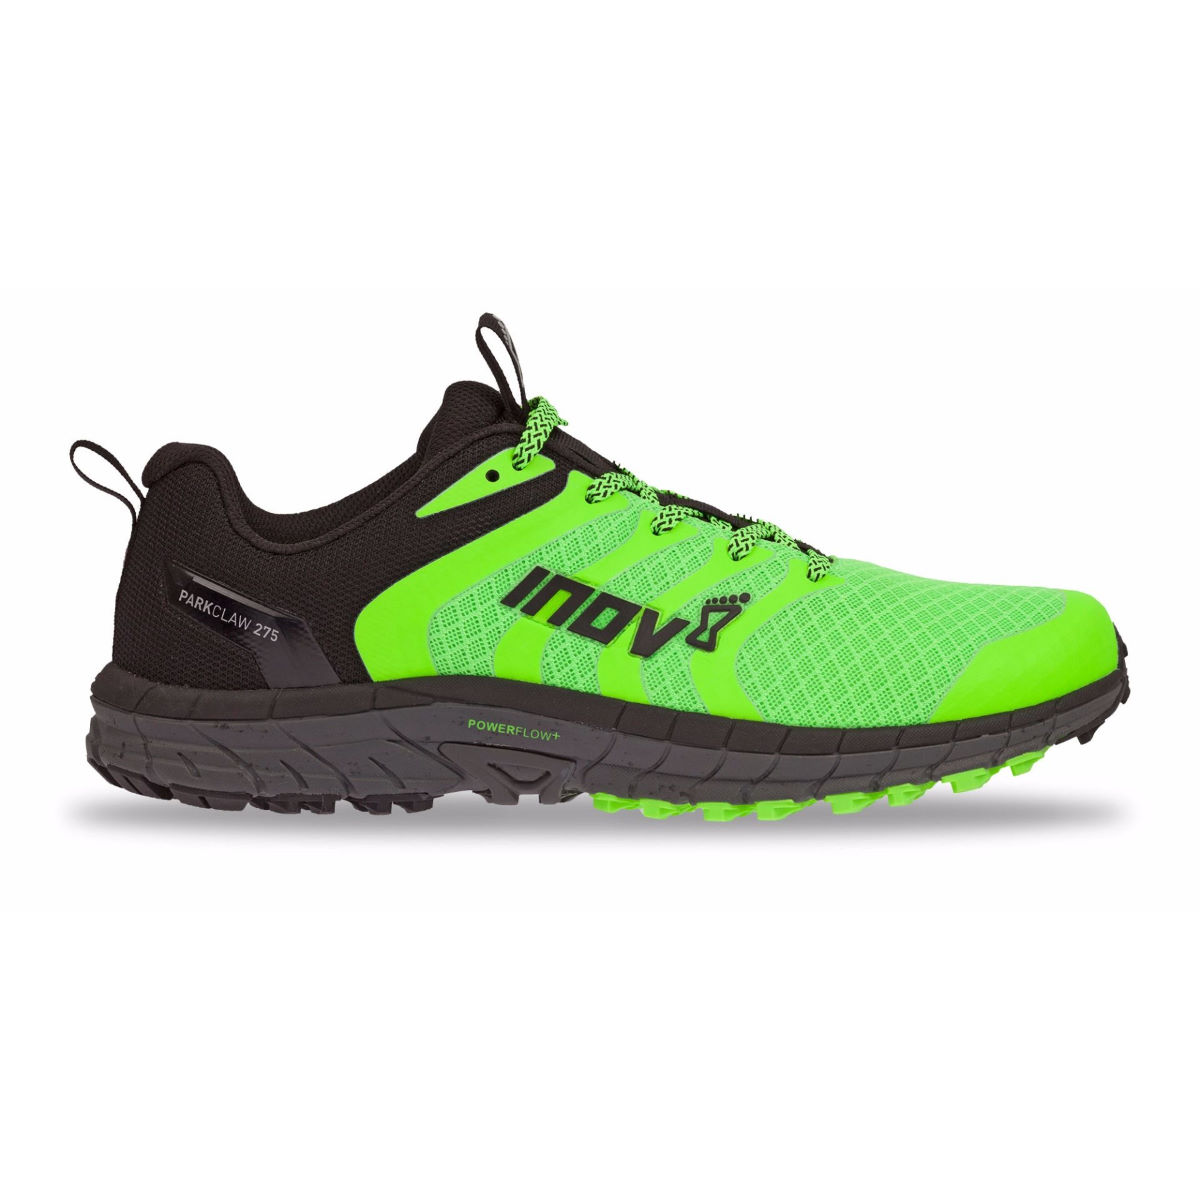 Chaussures Inov-8 Parkclaw 275 - UK 11 GREEN/BLACK